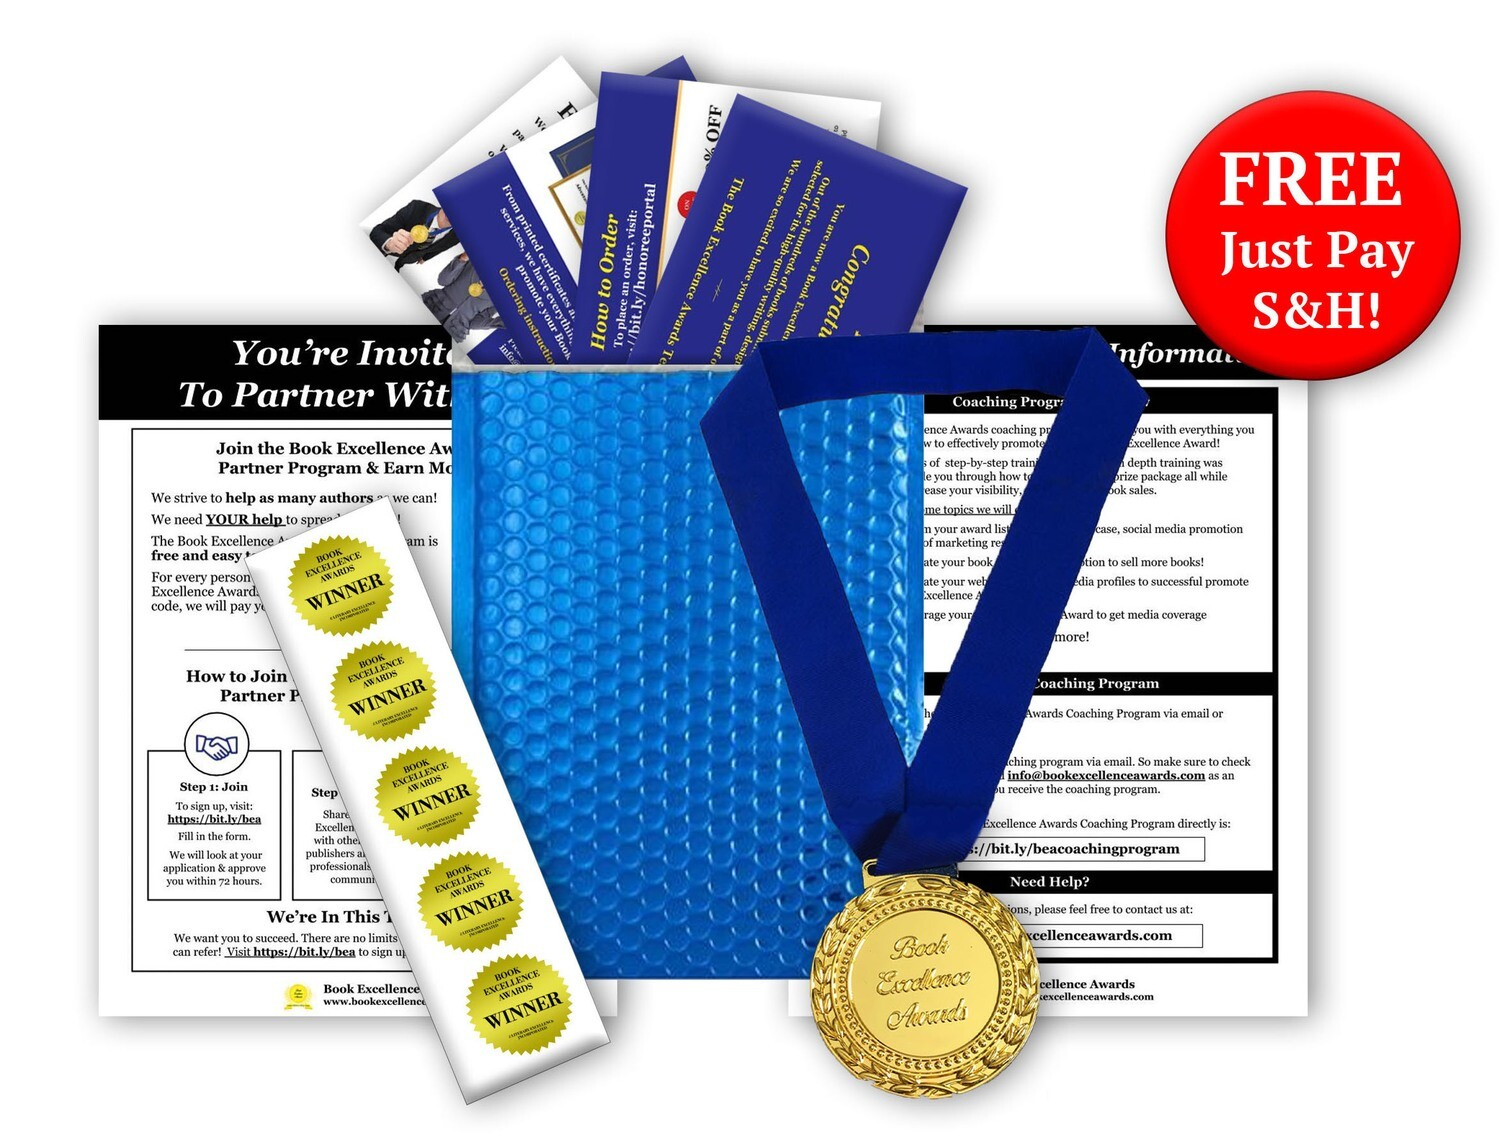 Honoree Welcome Package - FREE + $19.95 S&H